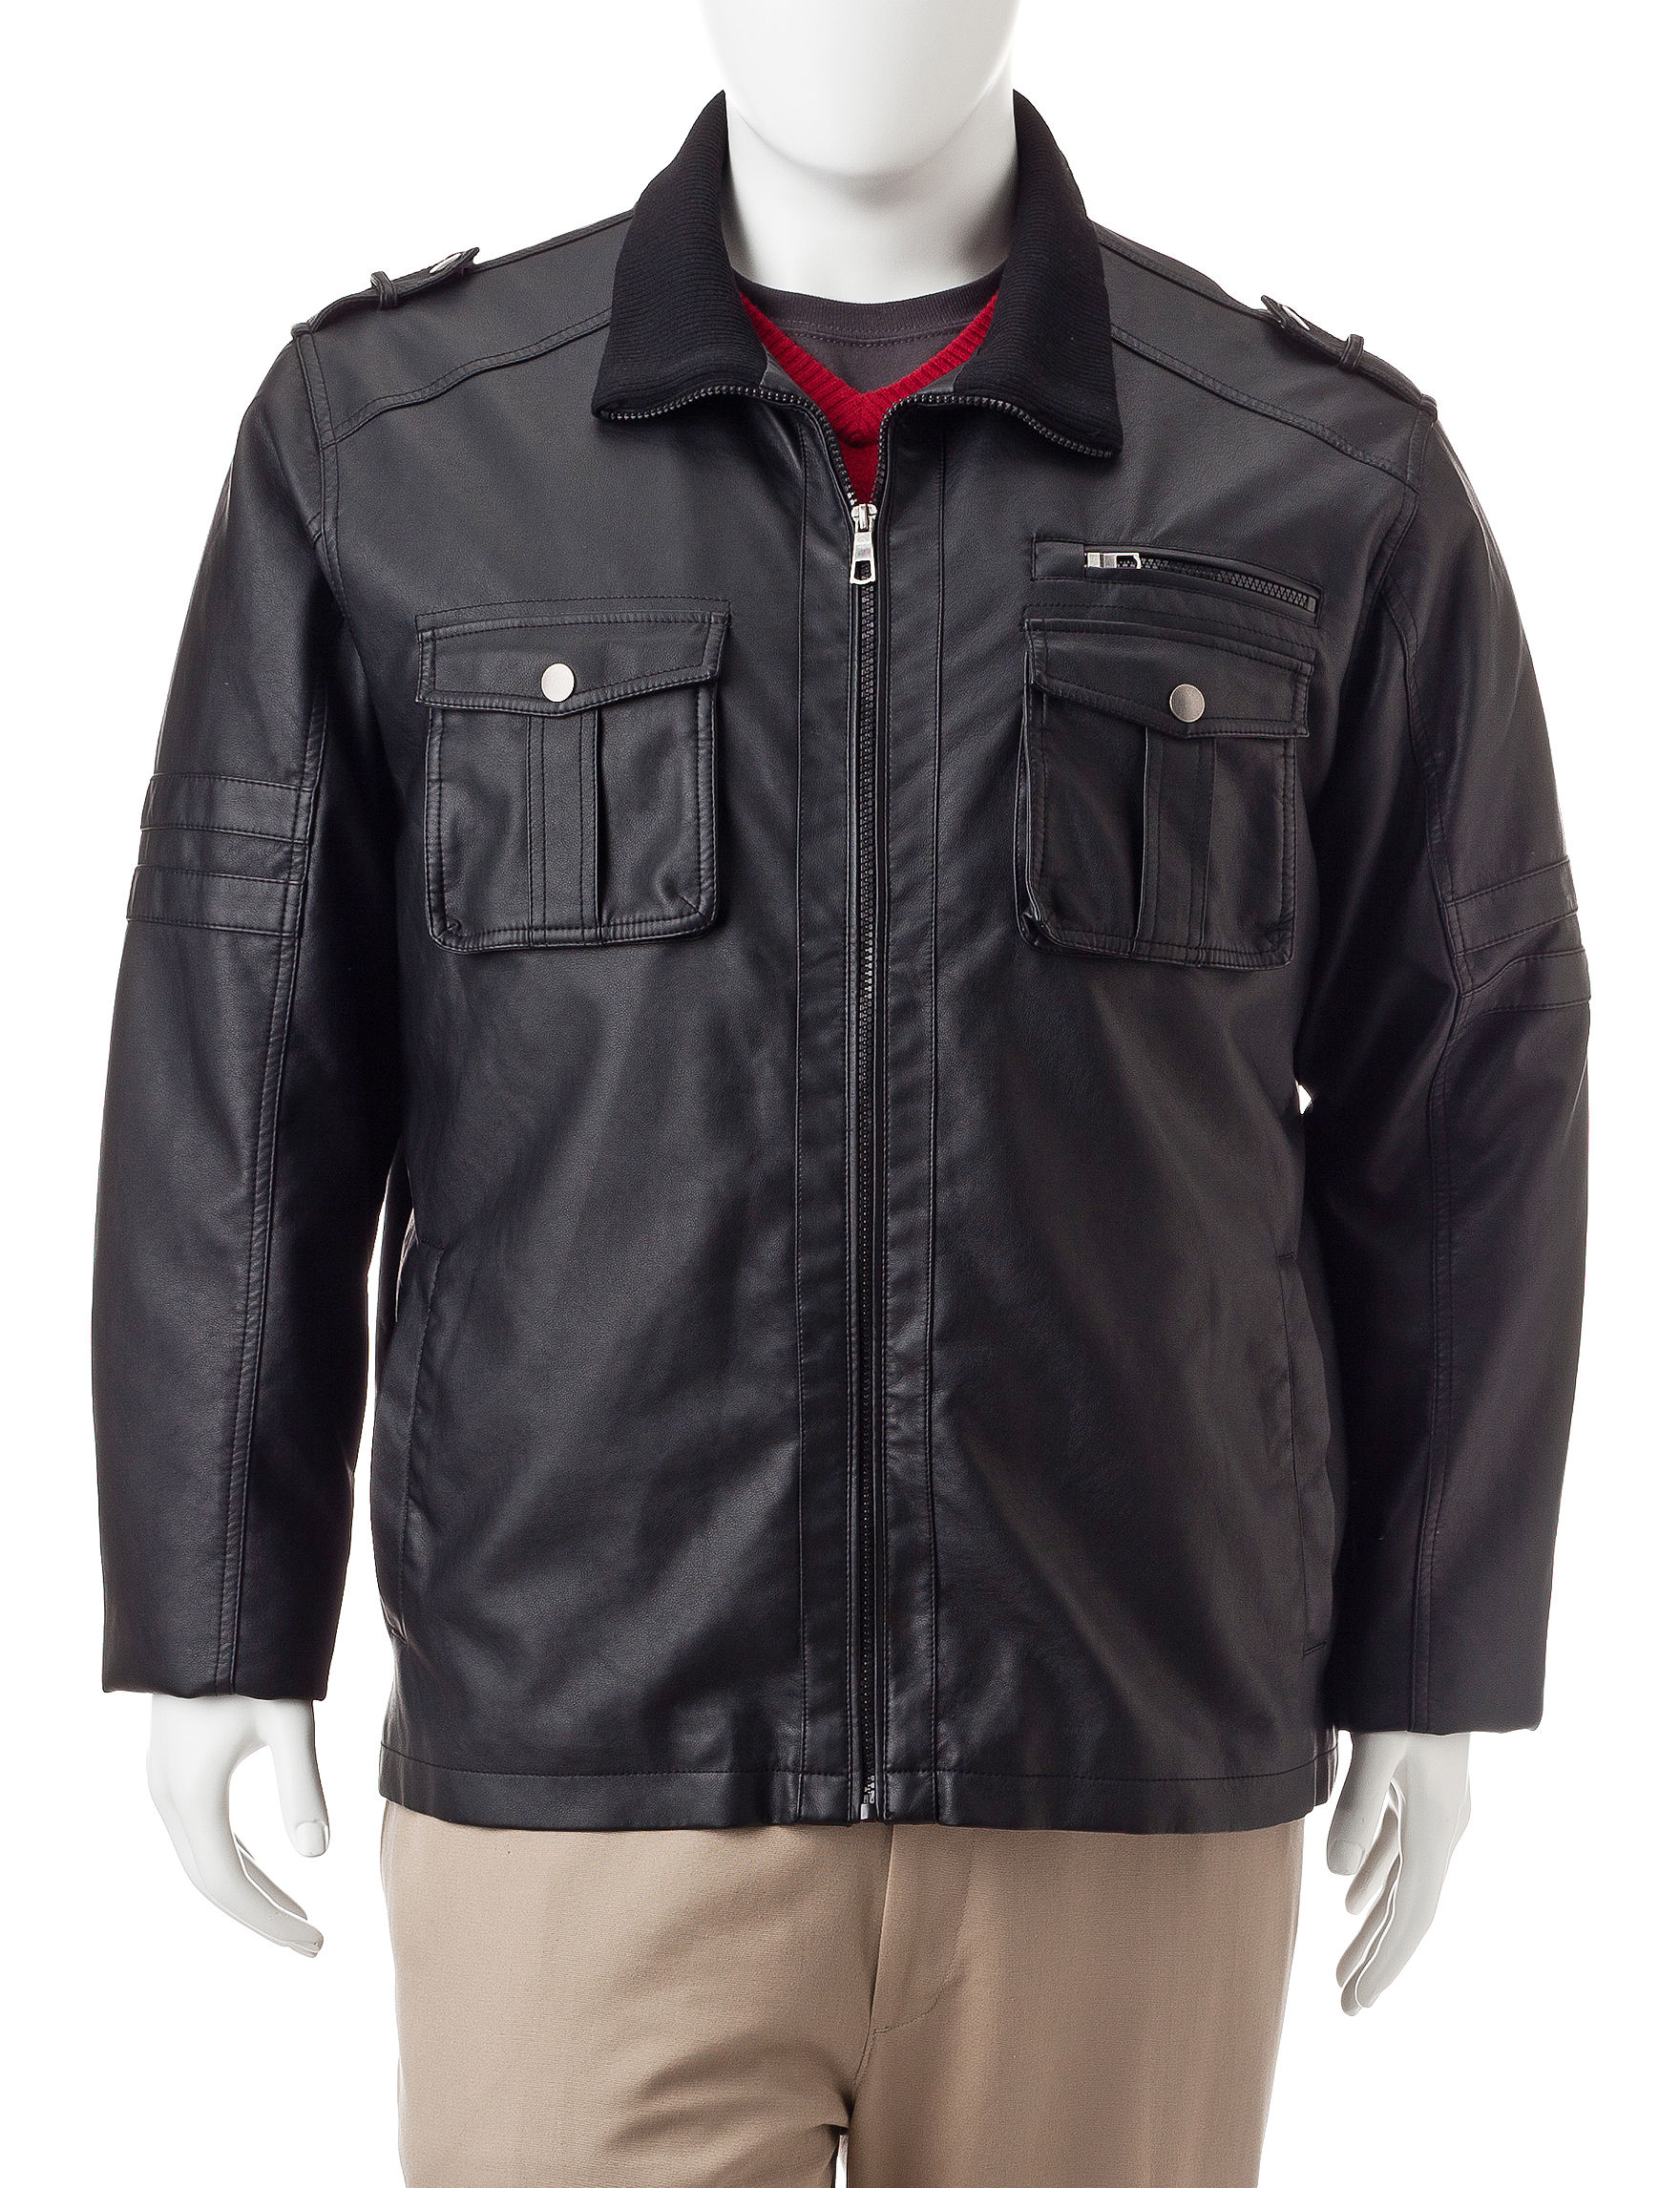 Whispering Smith Black Bomber & Moto Jackets